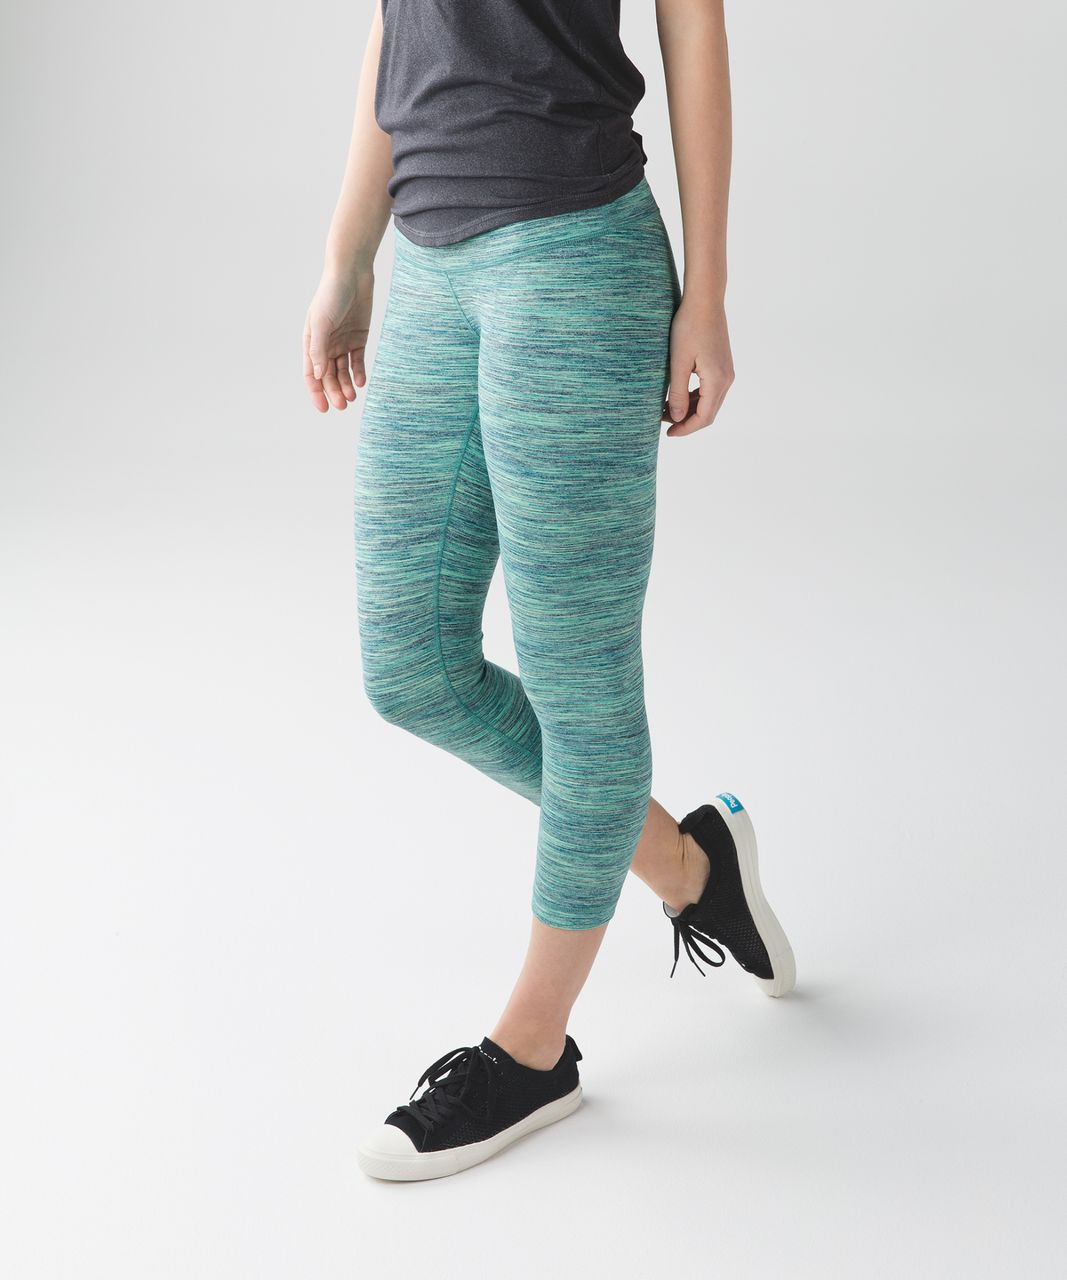 Lululemon Wunder Under Crop (Hi-Rise) - Space Dye Camo Alberta Lake Fresh Teal